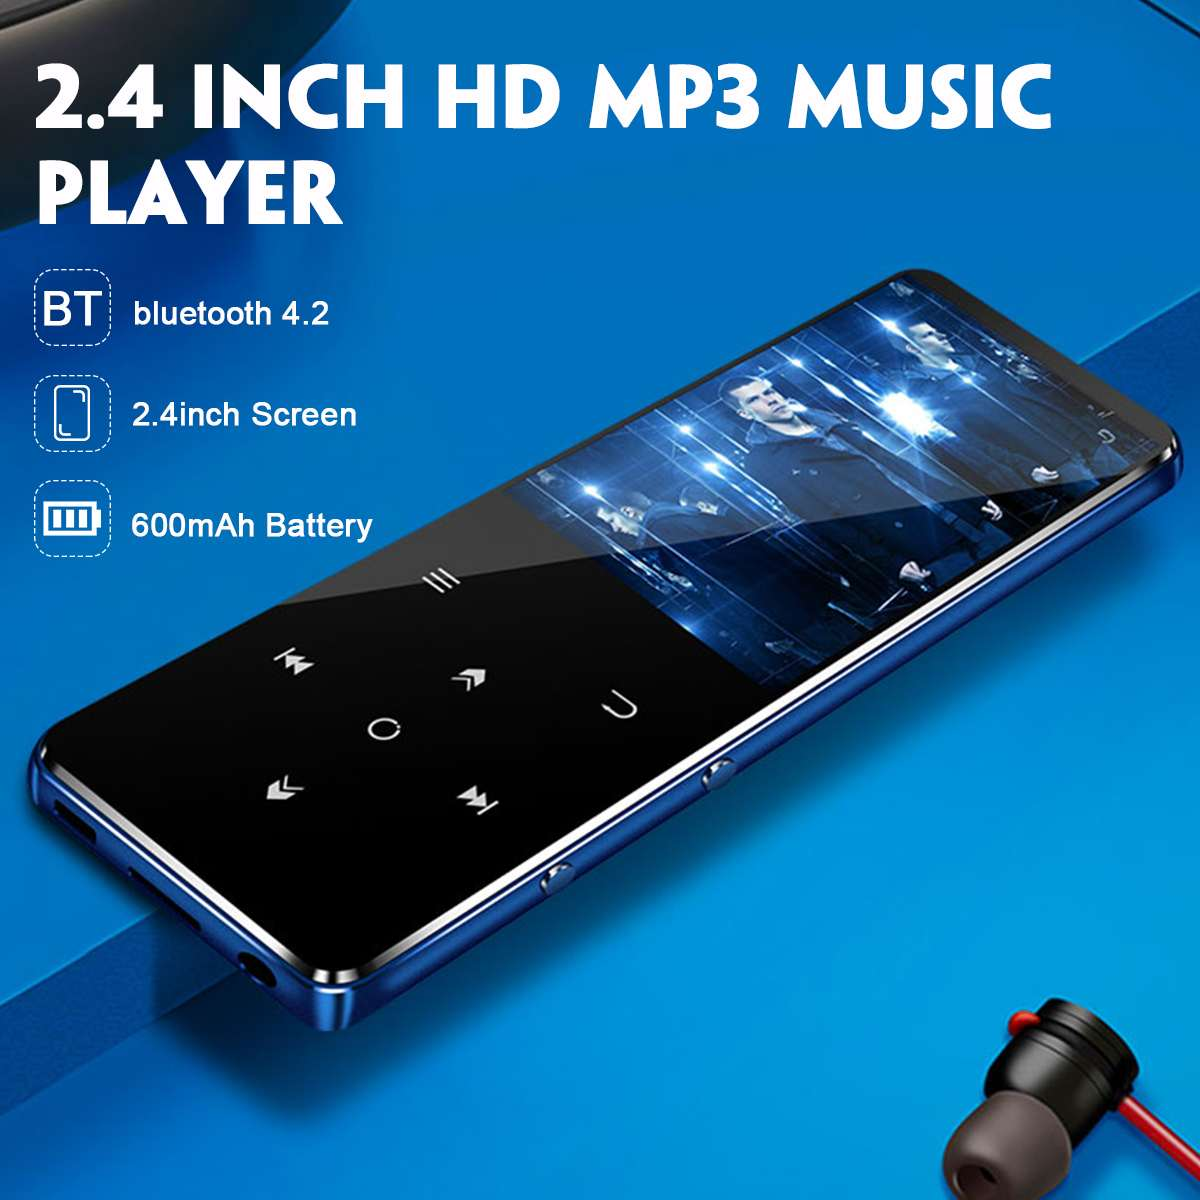 <font><b>MP3</b></font> <font><b>Player</b></font> 2.4 inch <font><b>HD</b></font> Touch Screen IPX4 Waterproof Music bluetooth <font><b>Player</b></font> HiFi Portable 4/8/16GB Lecteur <font><b>MP3</b></font> image